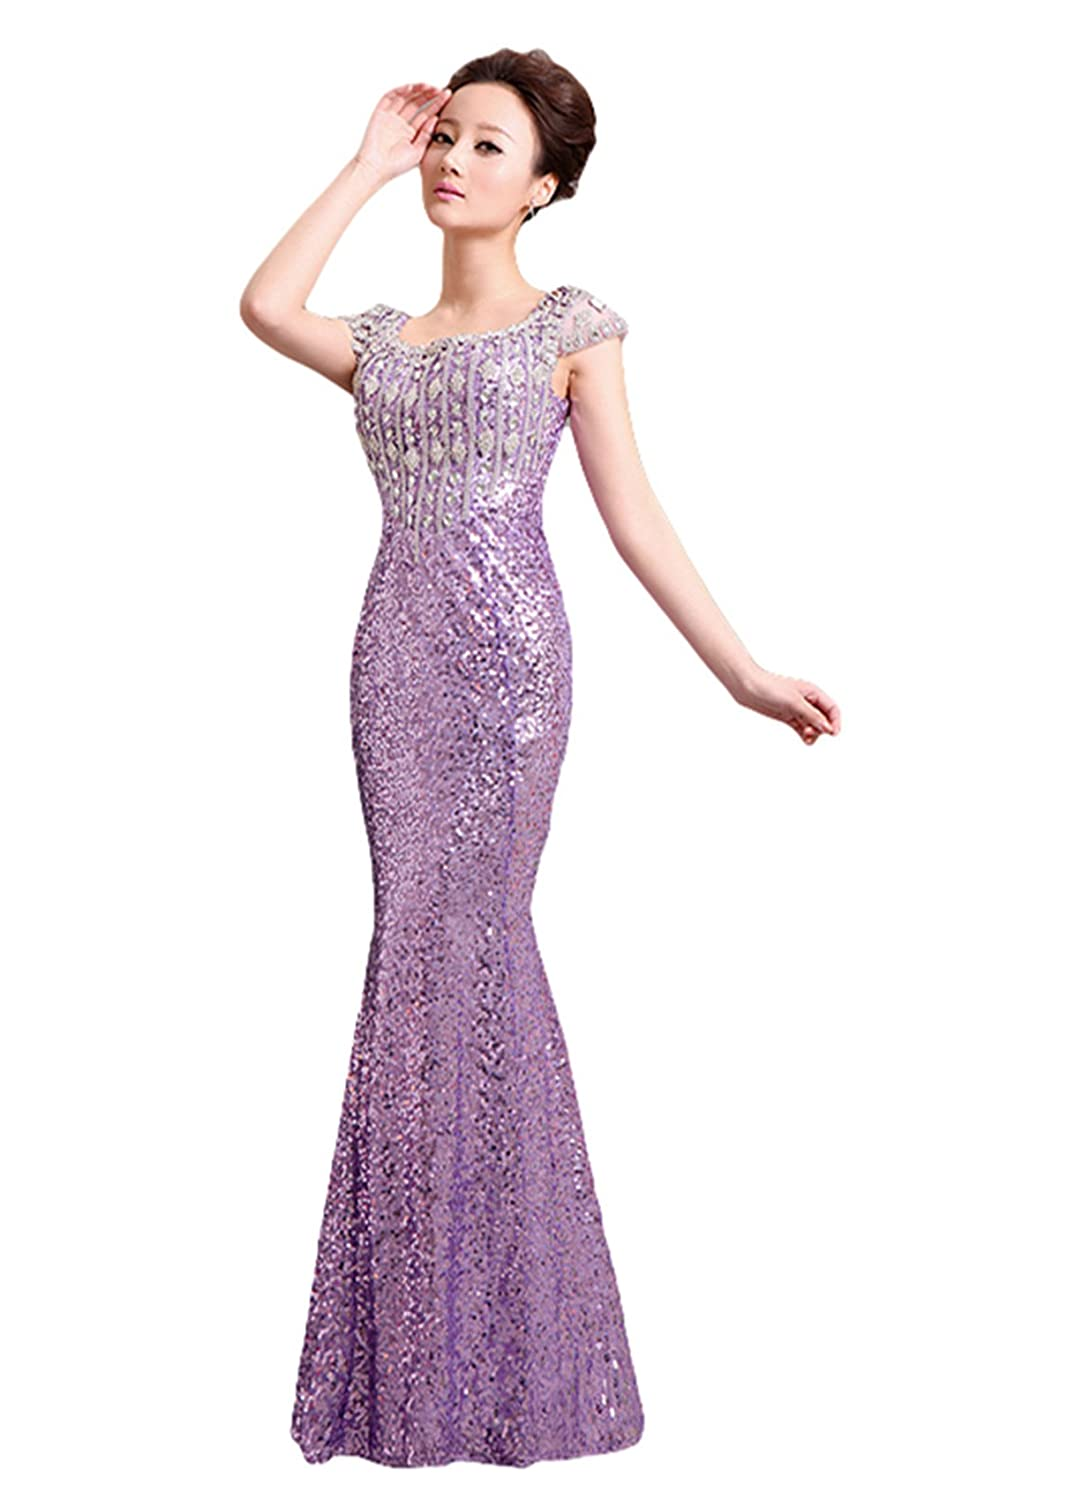 women's sexy Mermaid dress party evening dress - toast crystal sequins bridesmaid wedding dress